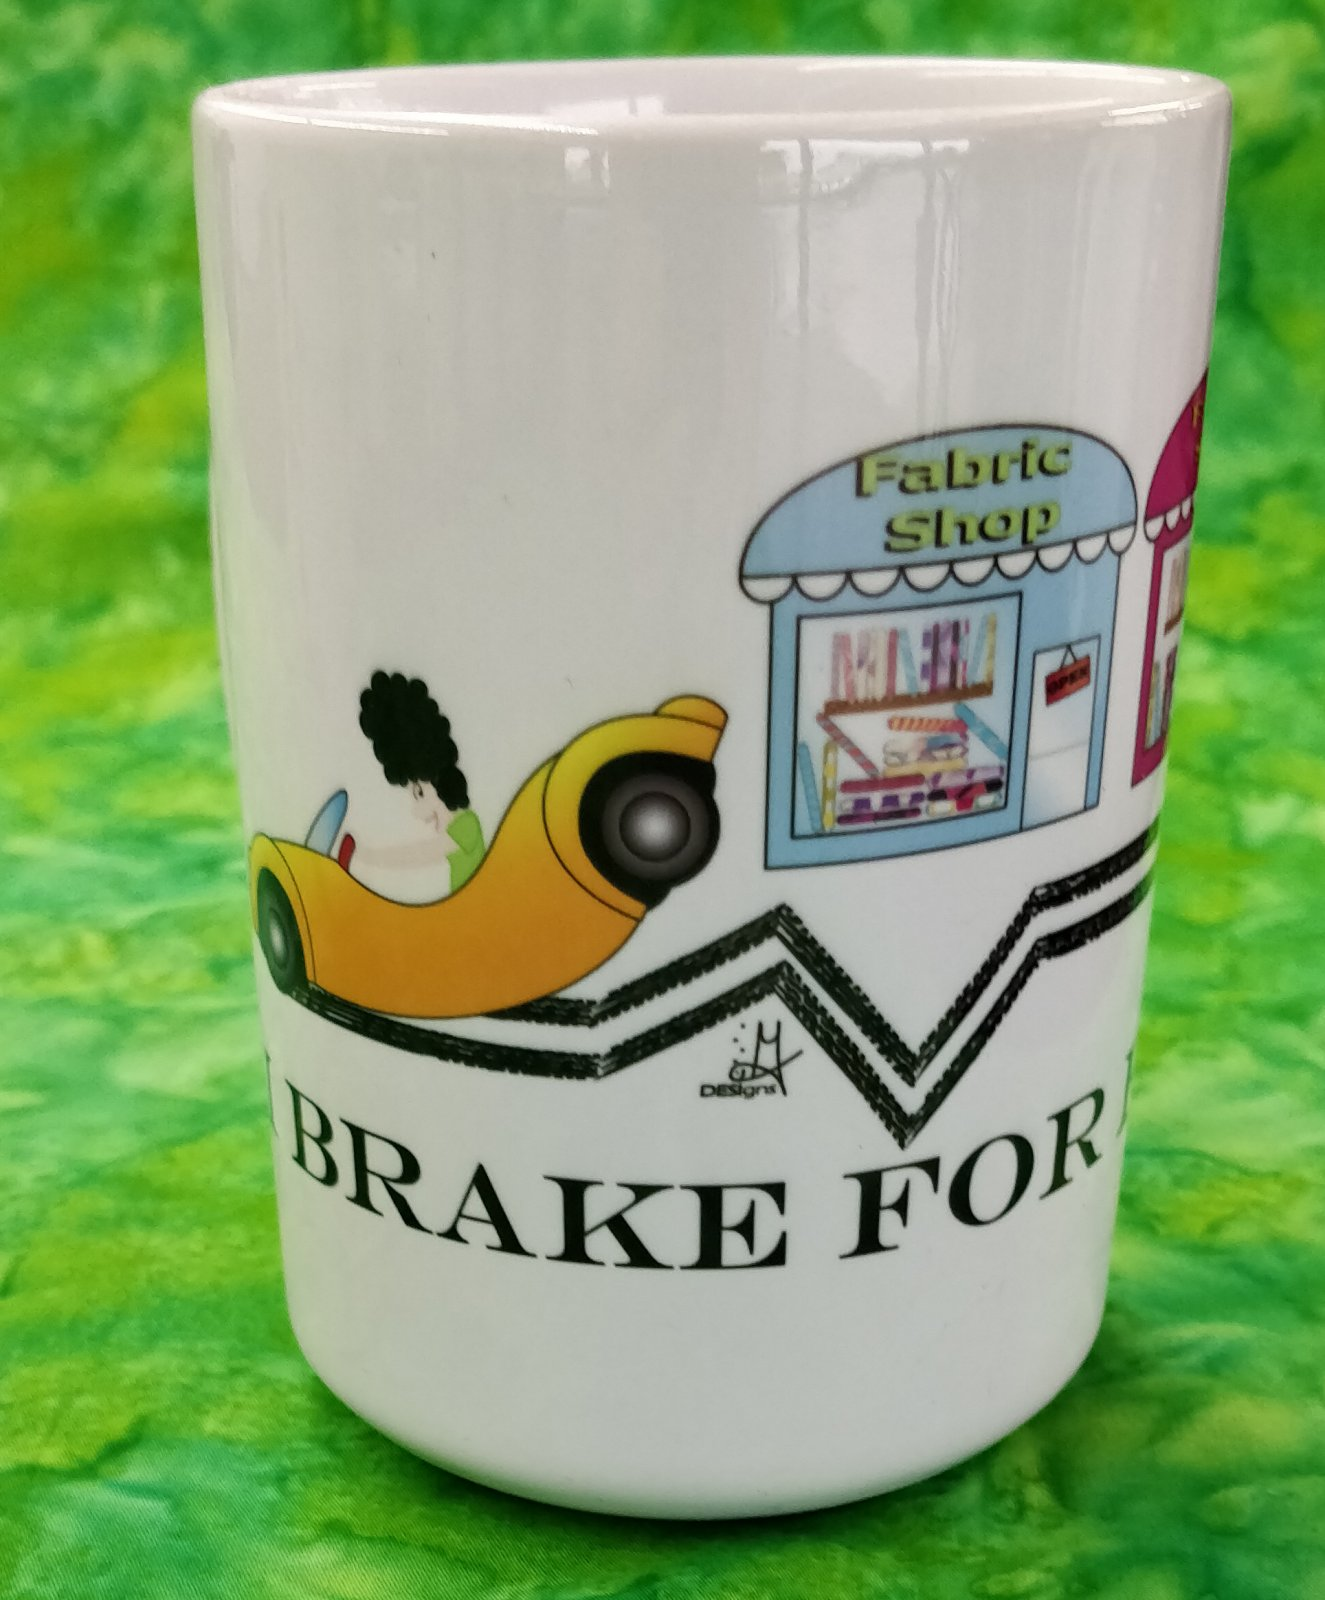 Mug - I Brake for Fabric - in store or curbside